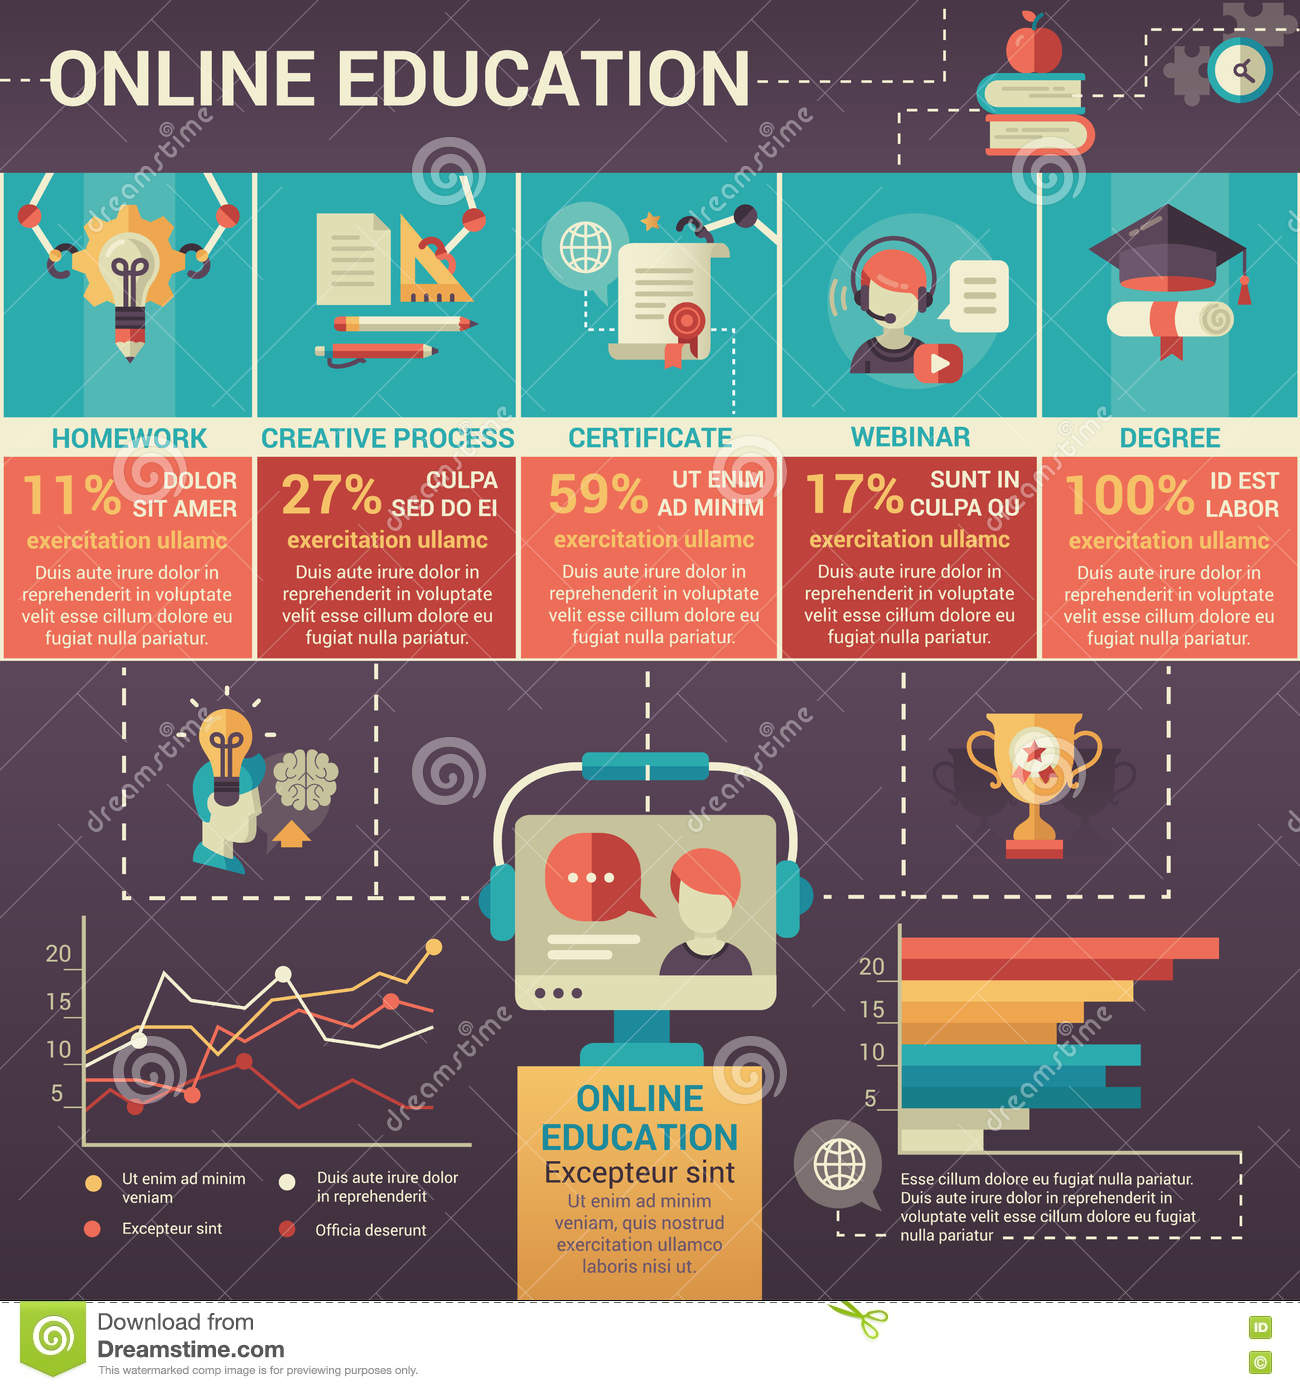 Poster design education - Design Education Flat Modern Online Poster